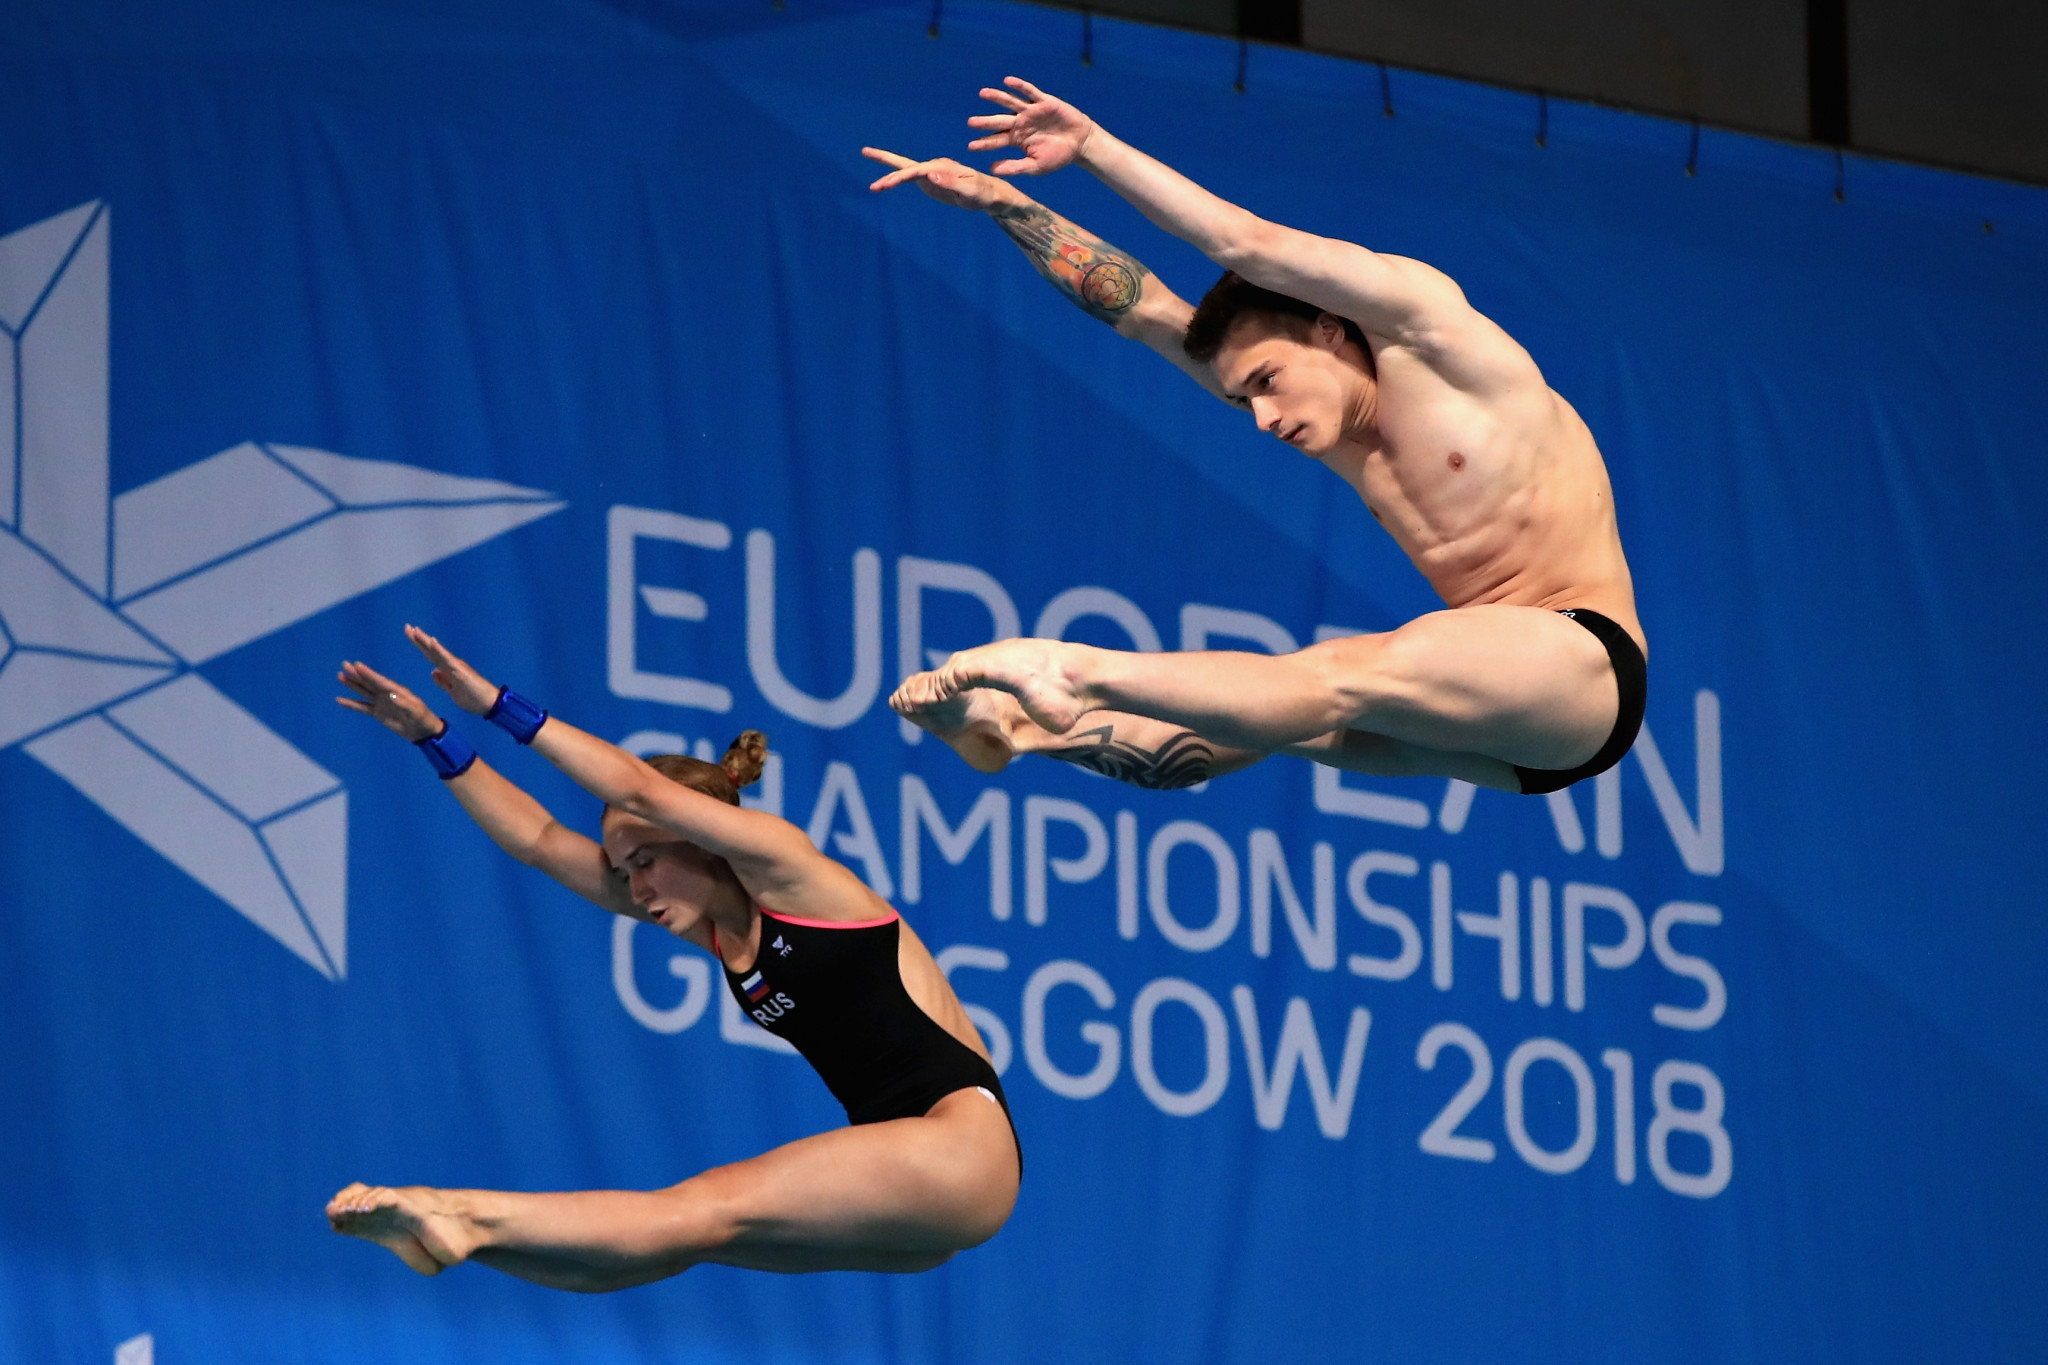 Russia's Yulia Timoshinina and Nikita Shleikher secured victory in the mixed synchronised 10 metres platform final ©Getty Images